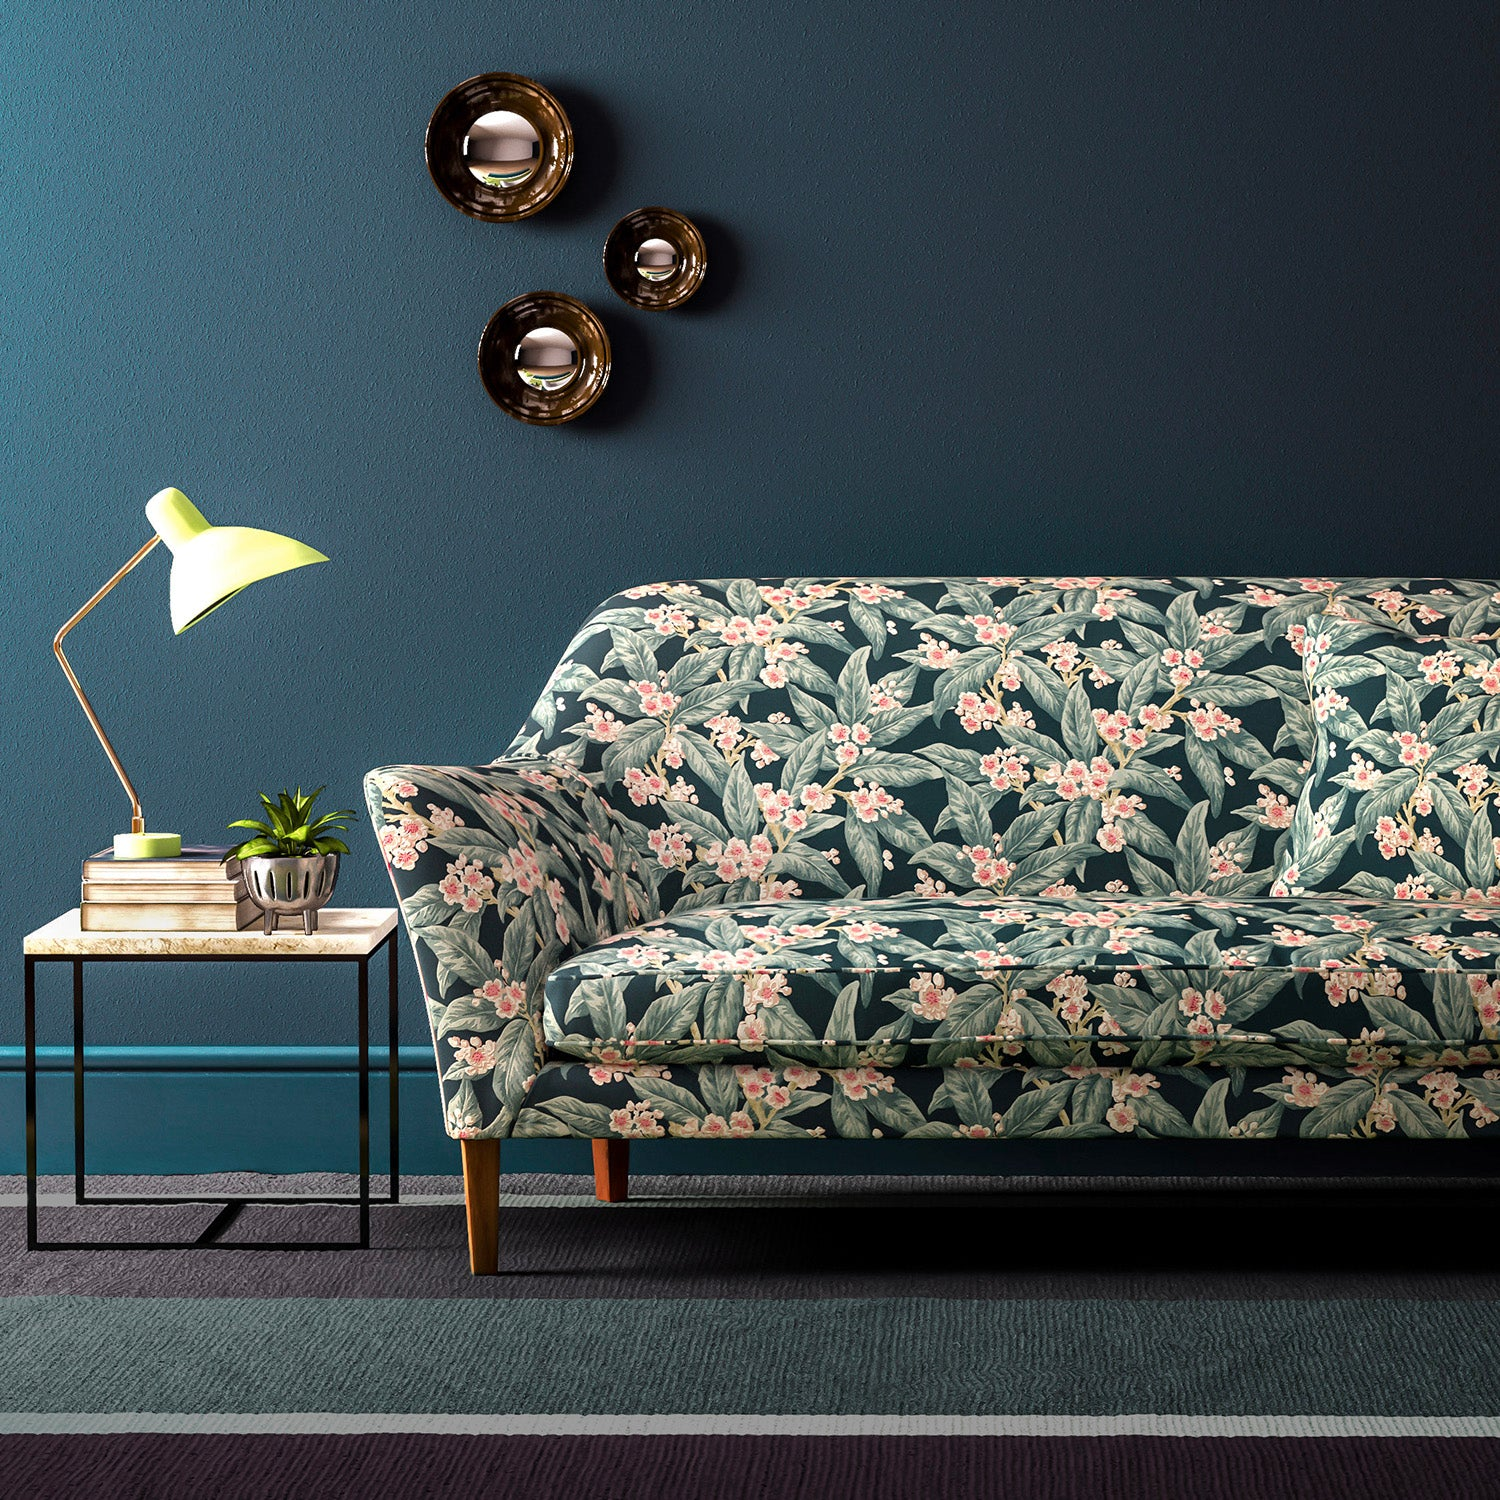 Sofa upholstered in a blue leaf and blossom velvet upholstery fabric with a stain resistant finish